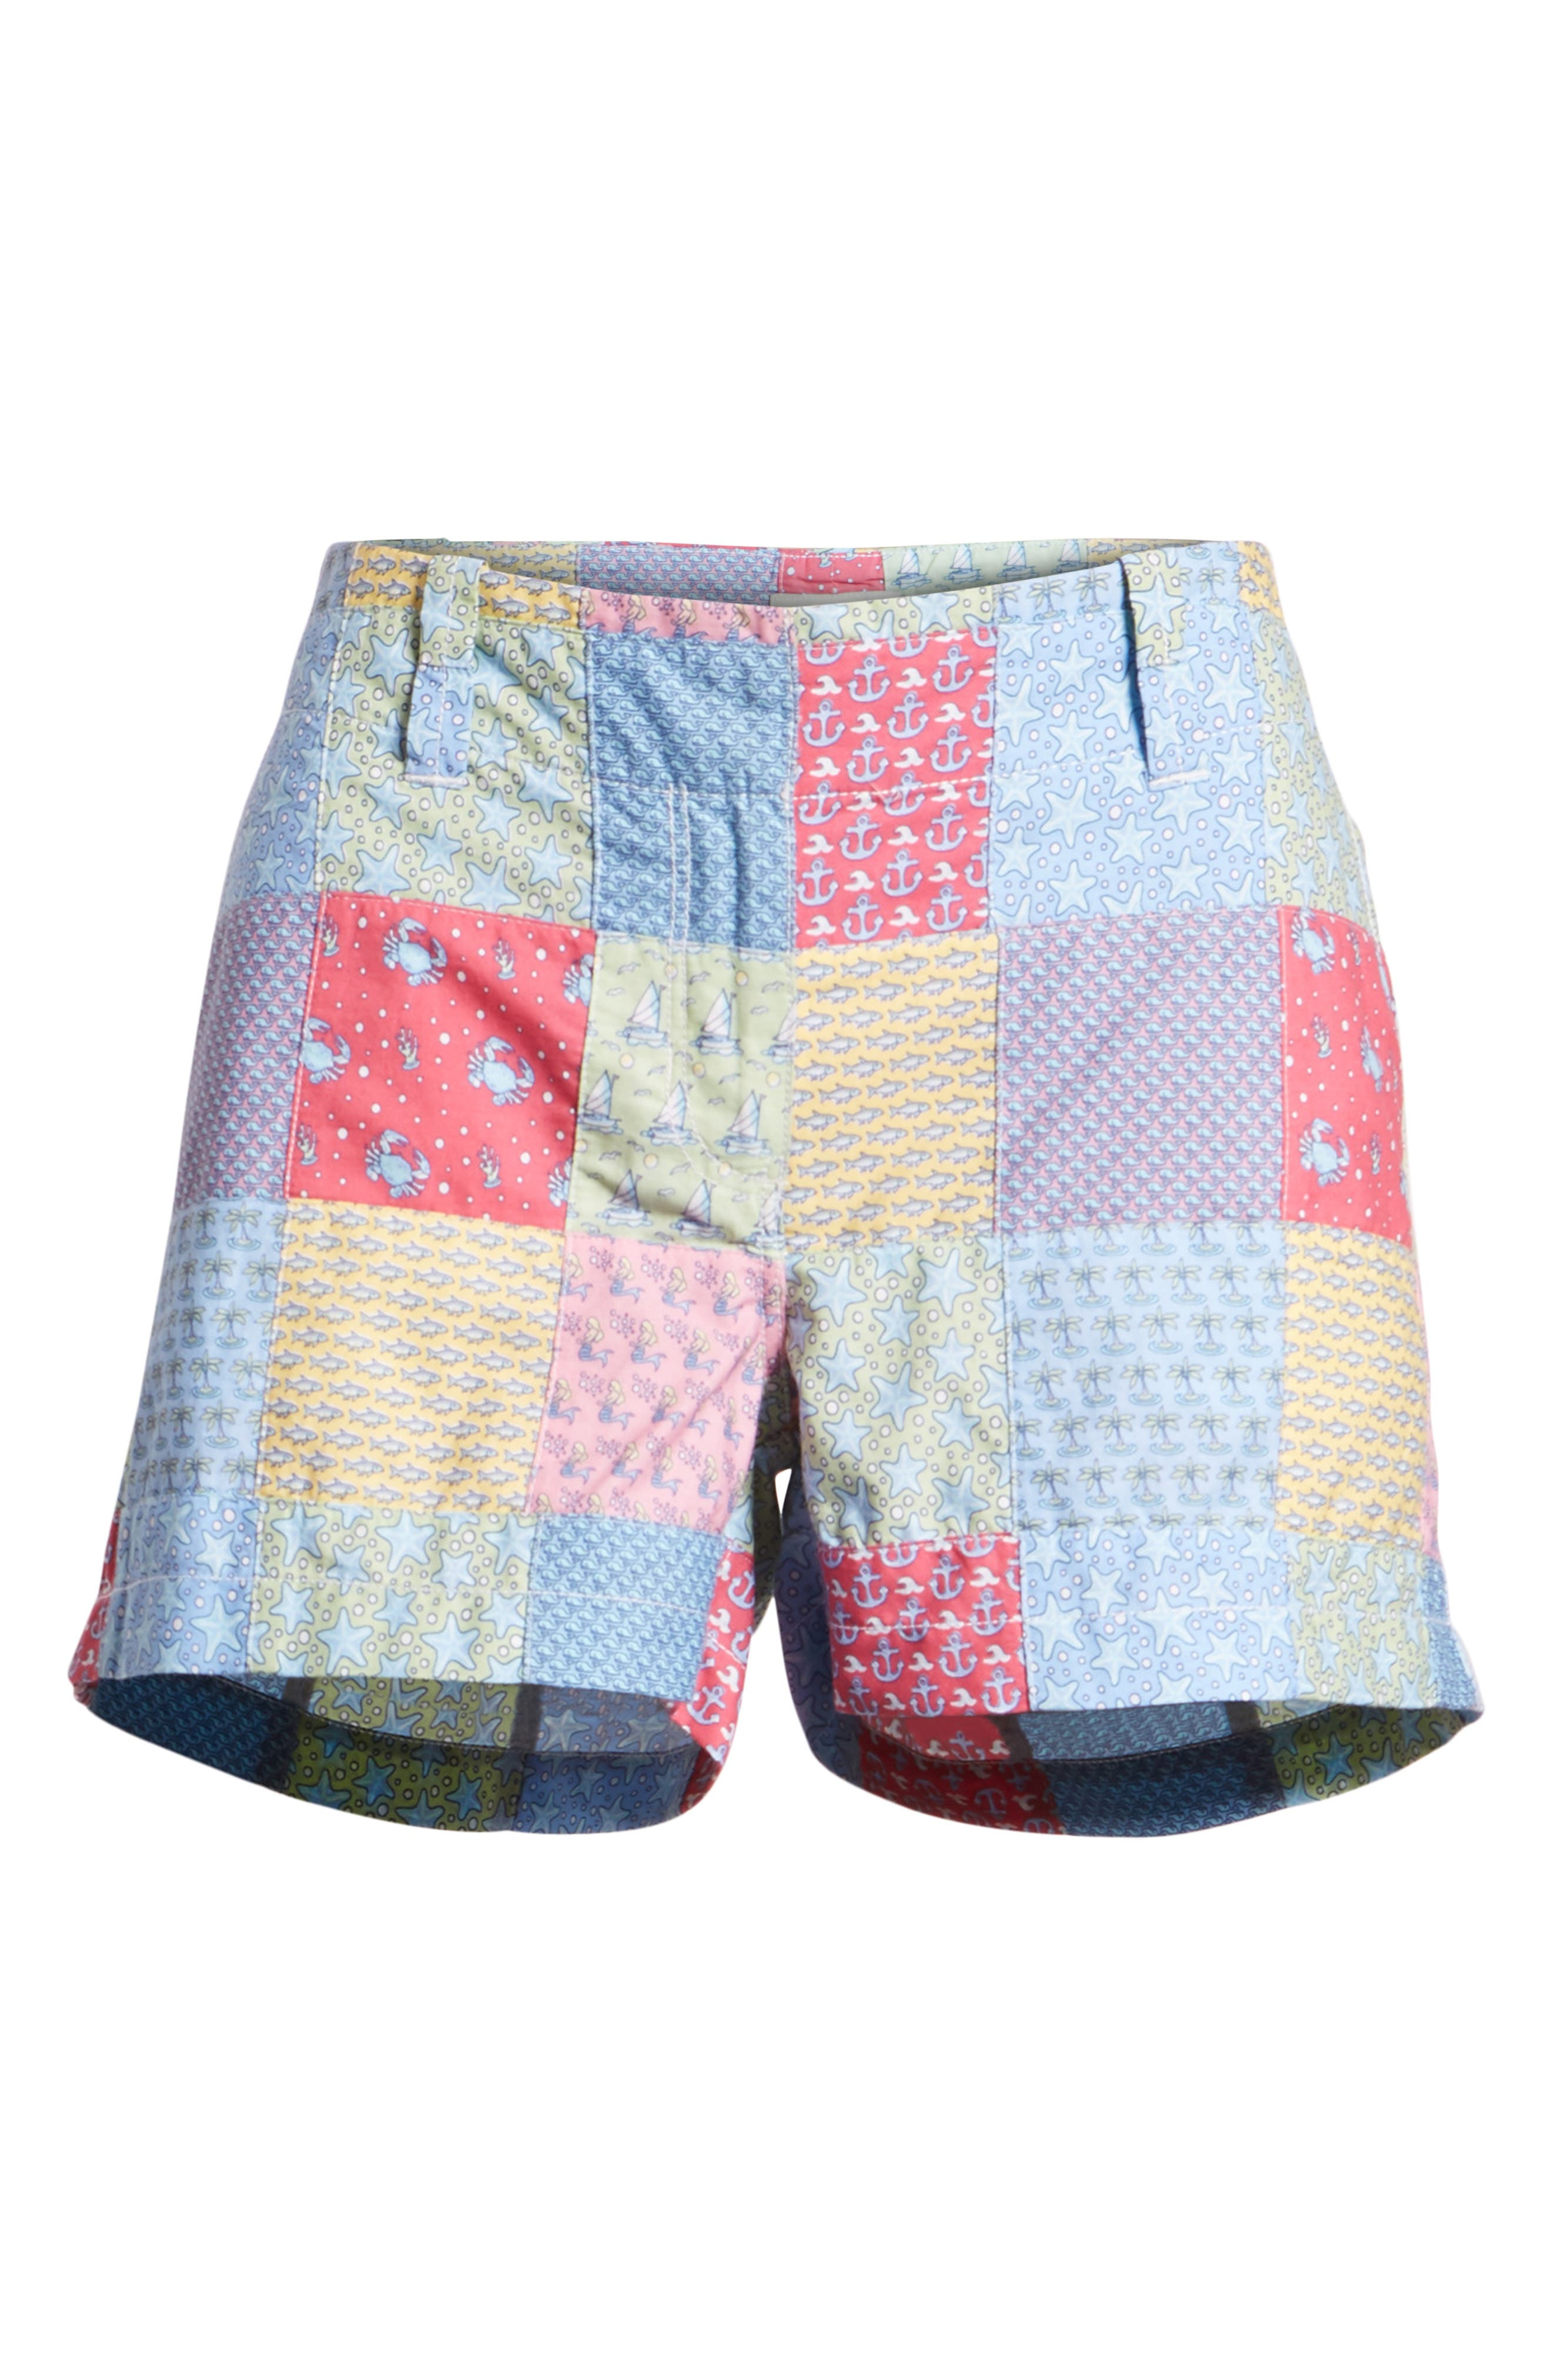 Patchwork Everyday Shorts,                             Alternate thumbnail 6, color,                             Sailors Red